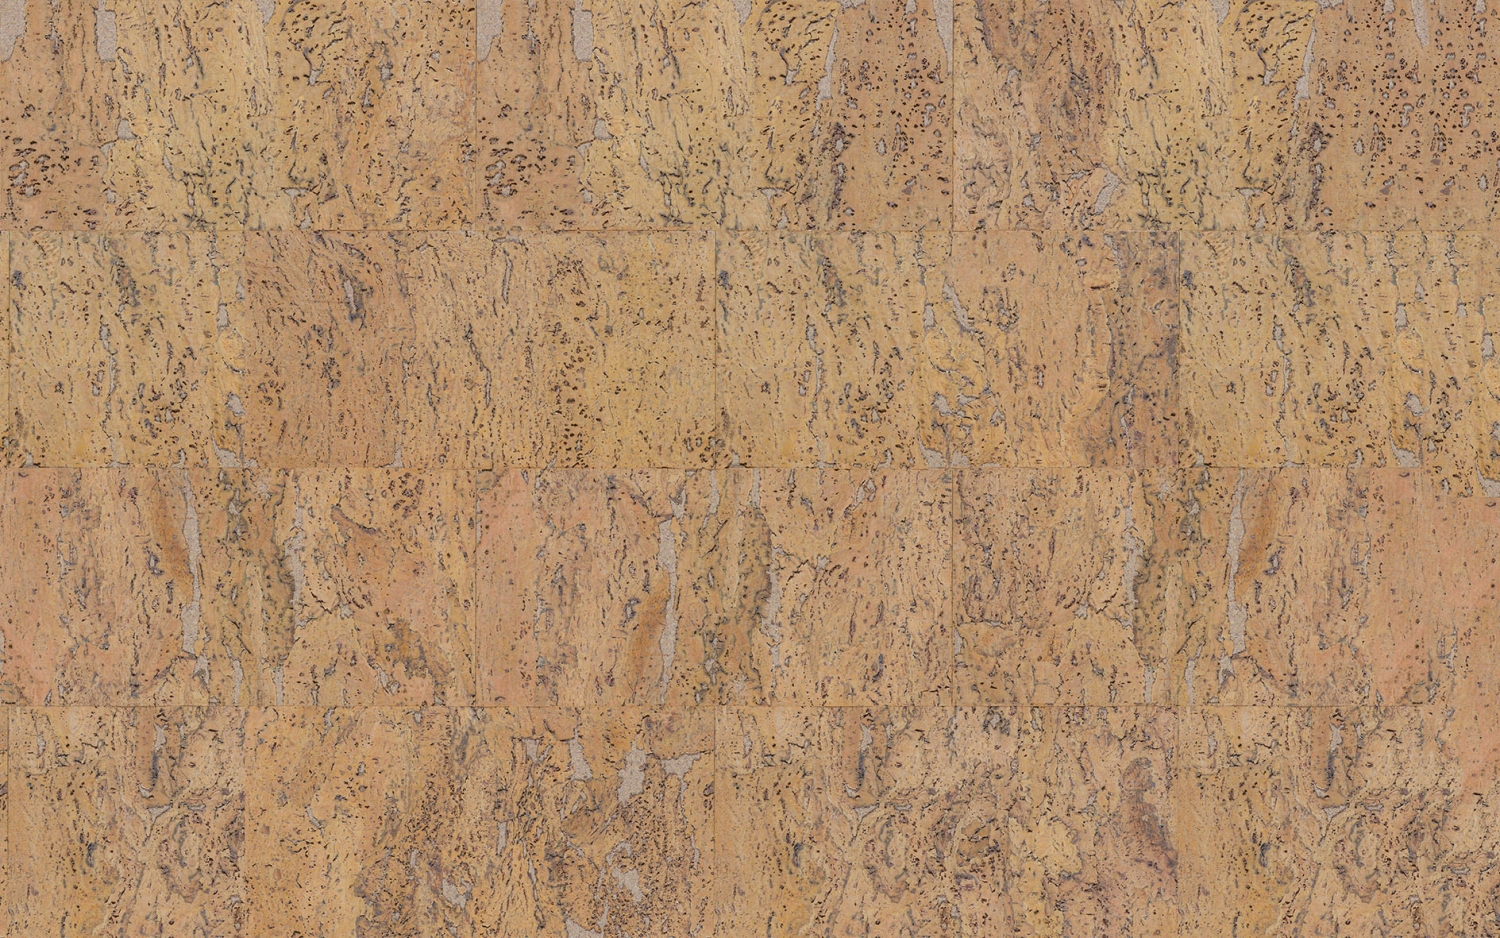 Cork Wall Stone Art Oyster 600x300 Mm Pack Of 11 1 98m2